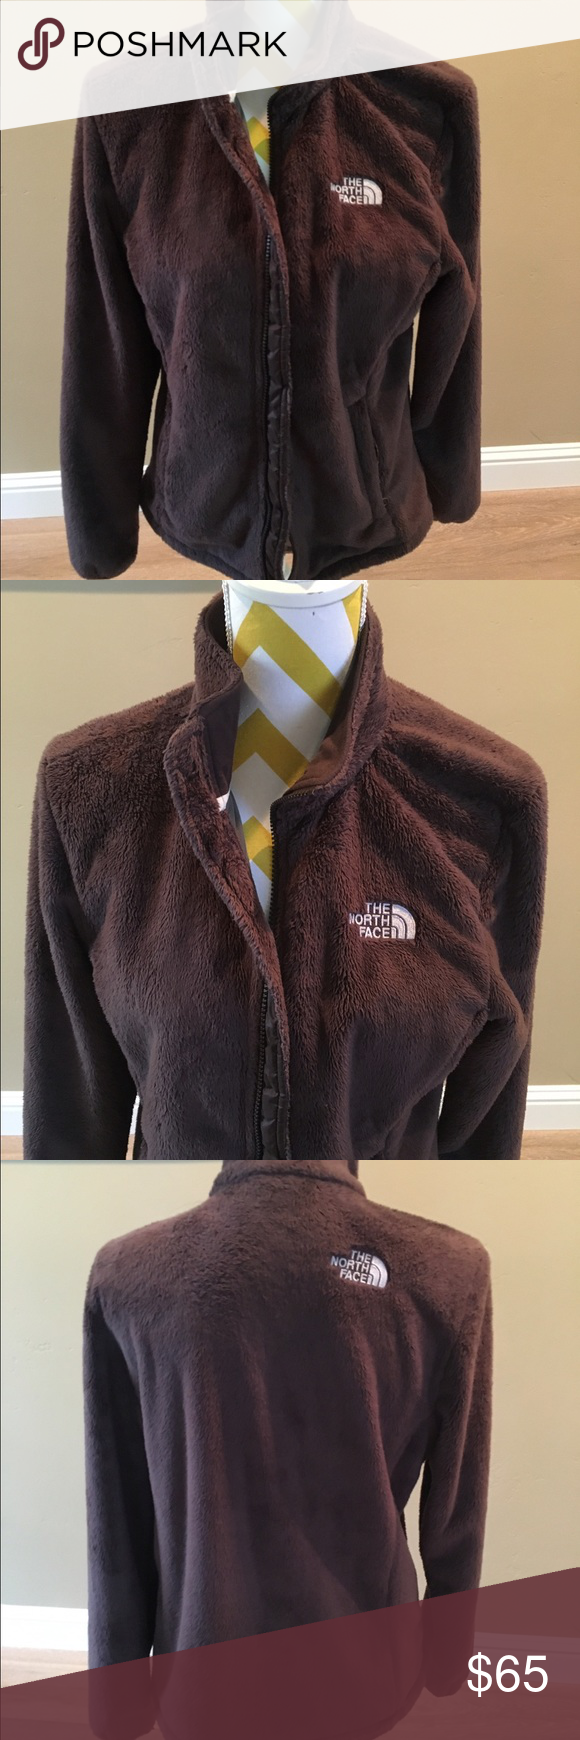 Women's North Face Ostia Fleece Jacket Women's North Face Osita fleece front zip up jacket. Chocolate brown. Well taken care of. Great condition. Smoke free home. North Face Jackets & Coats Puffers